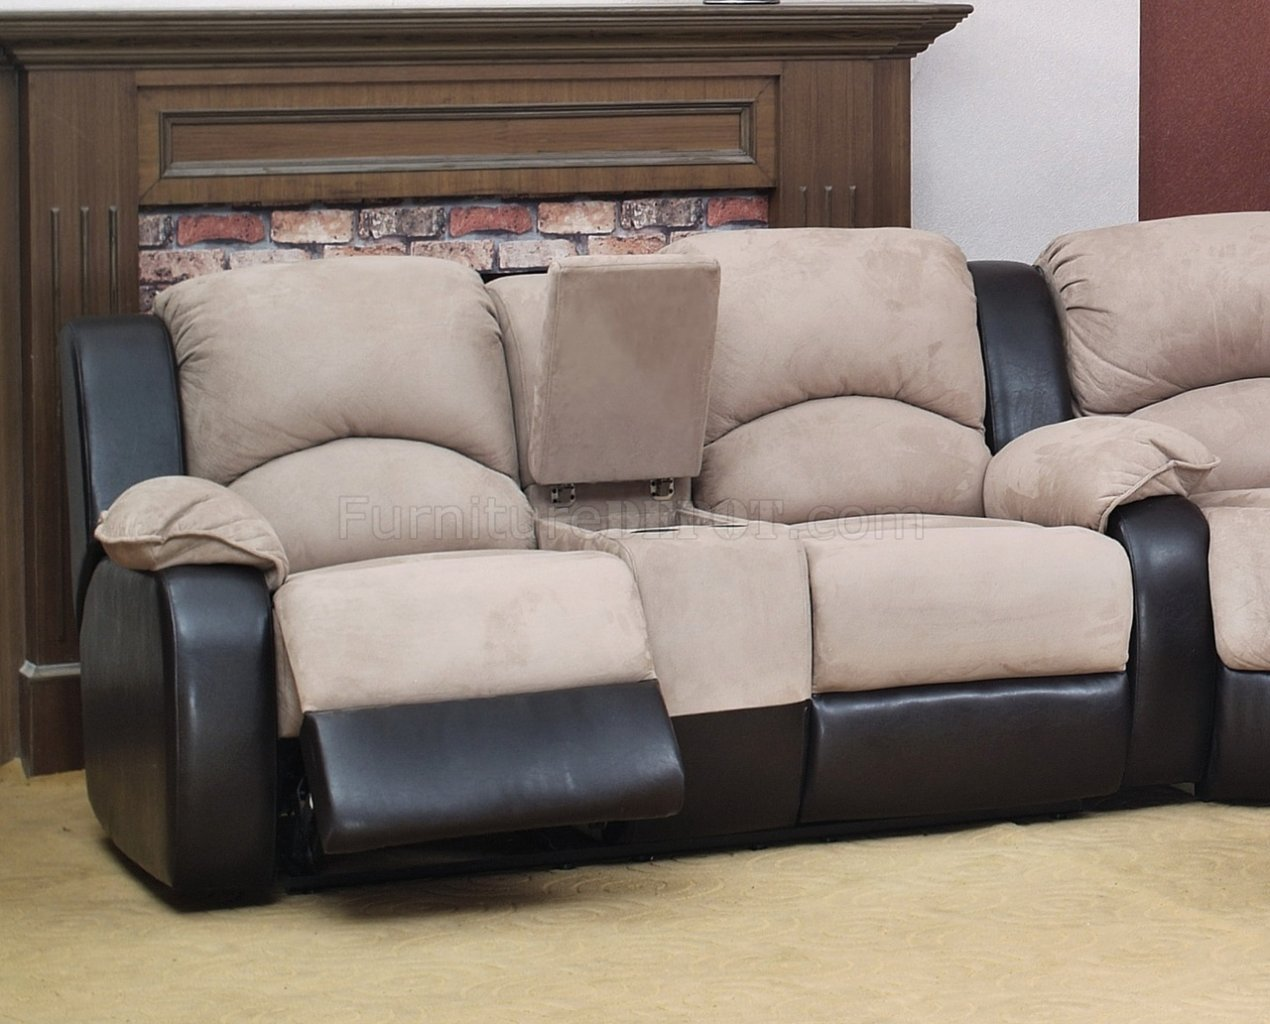 fabric sectional sofa with recliner rowe bed mattress beige modern reclining w optional chair